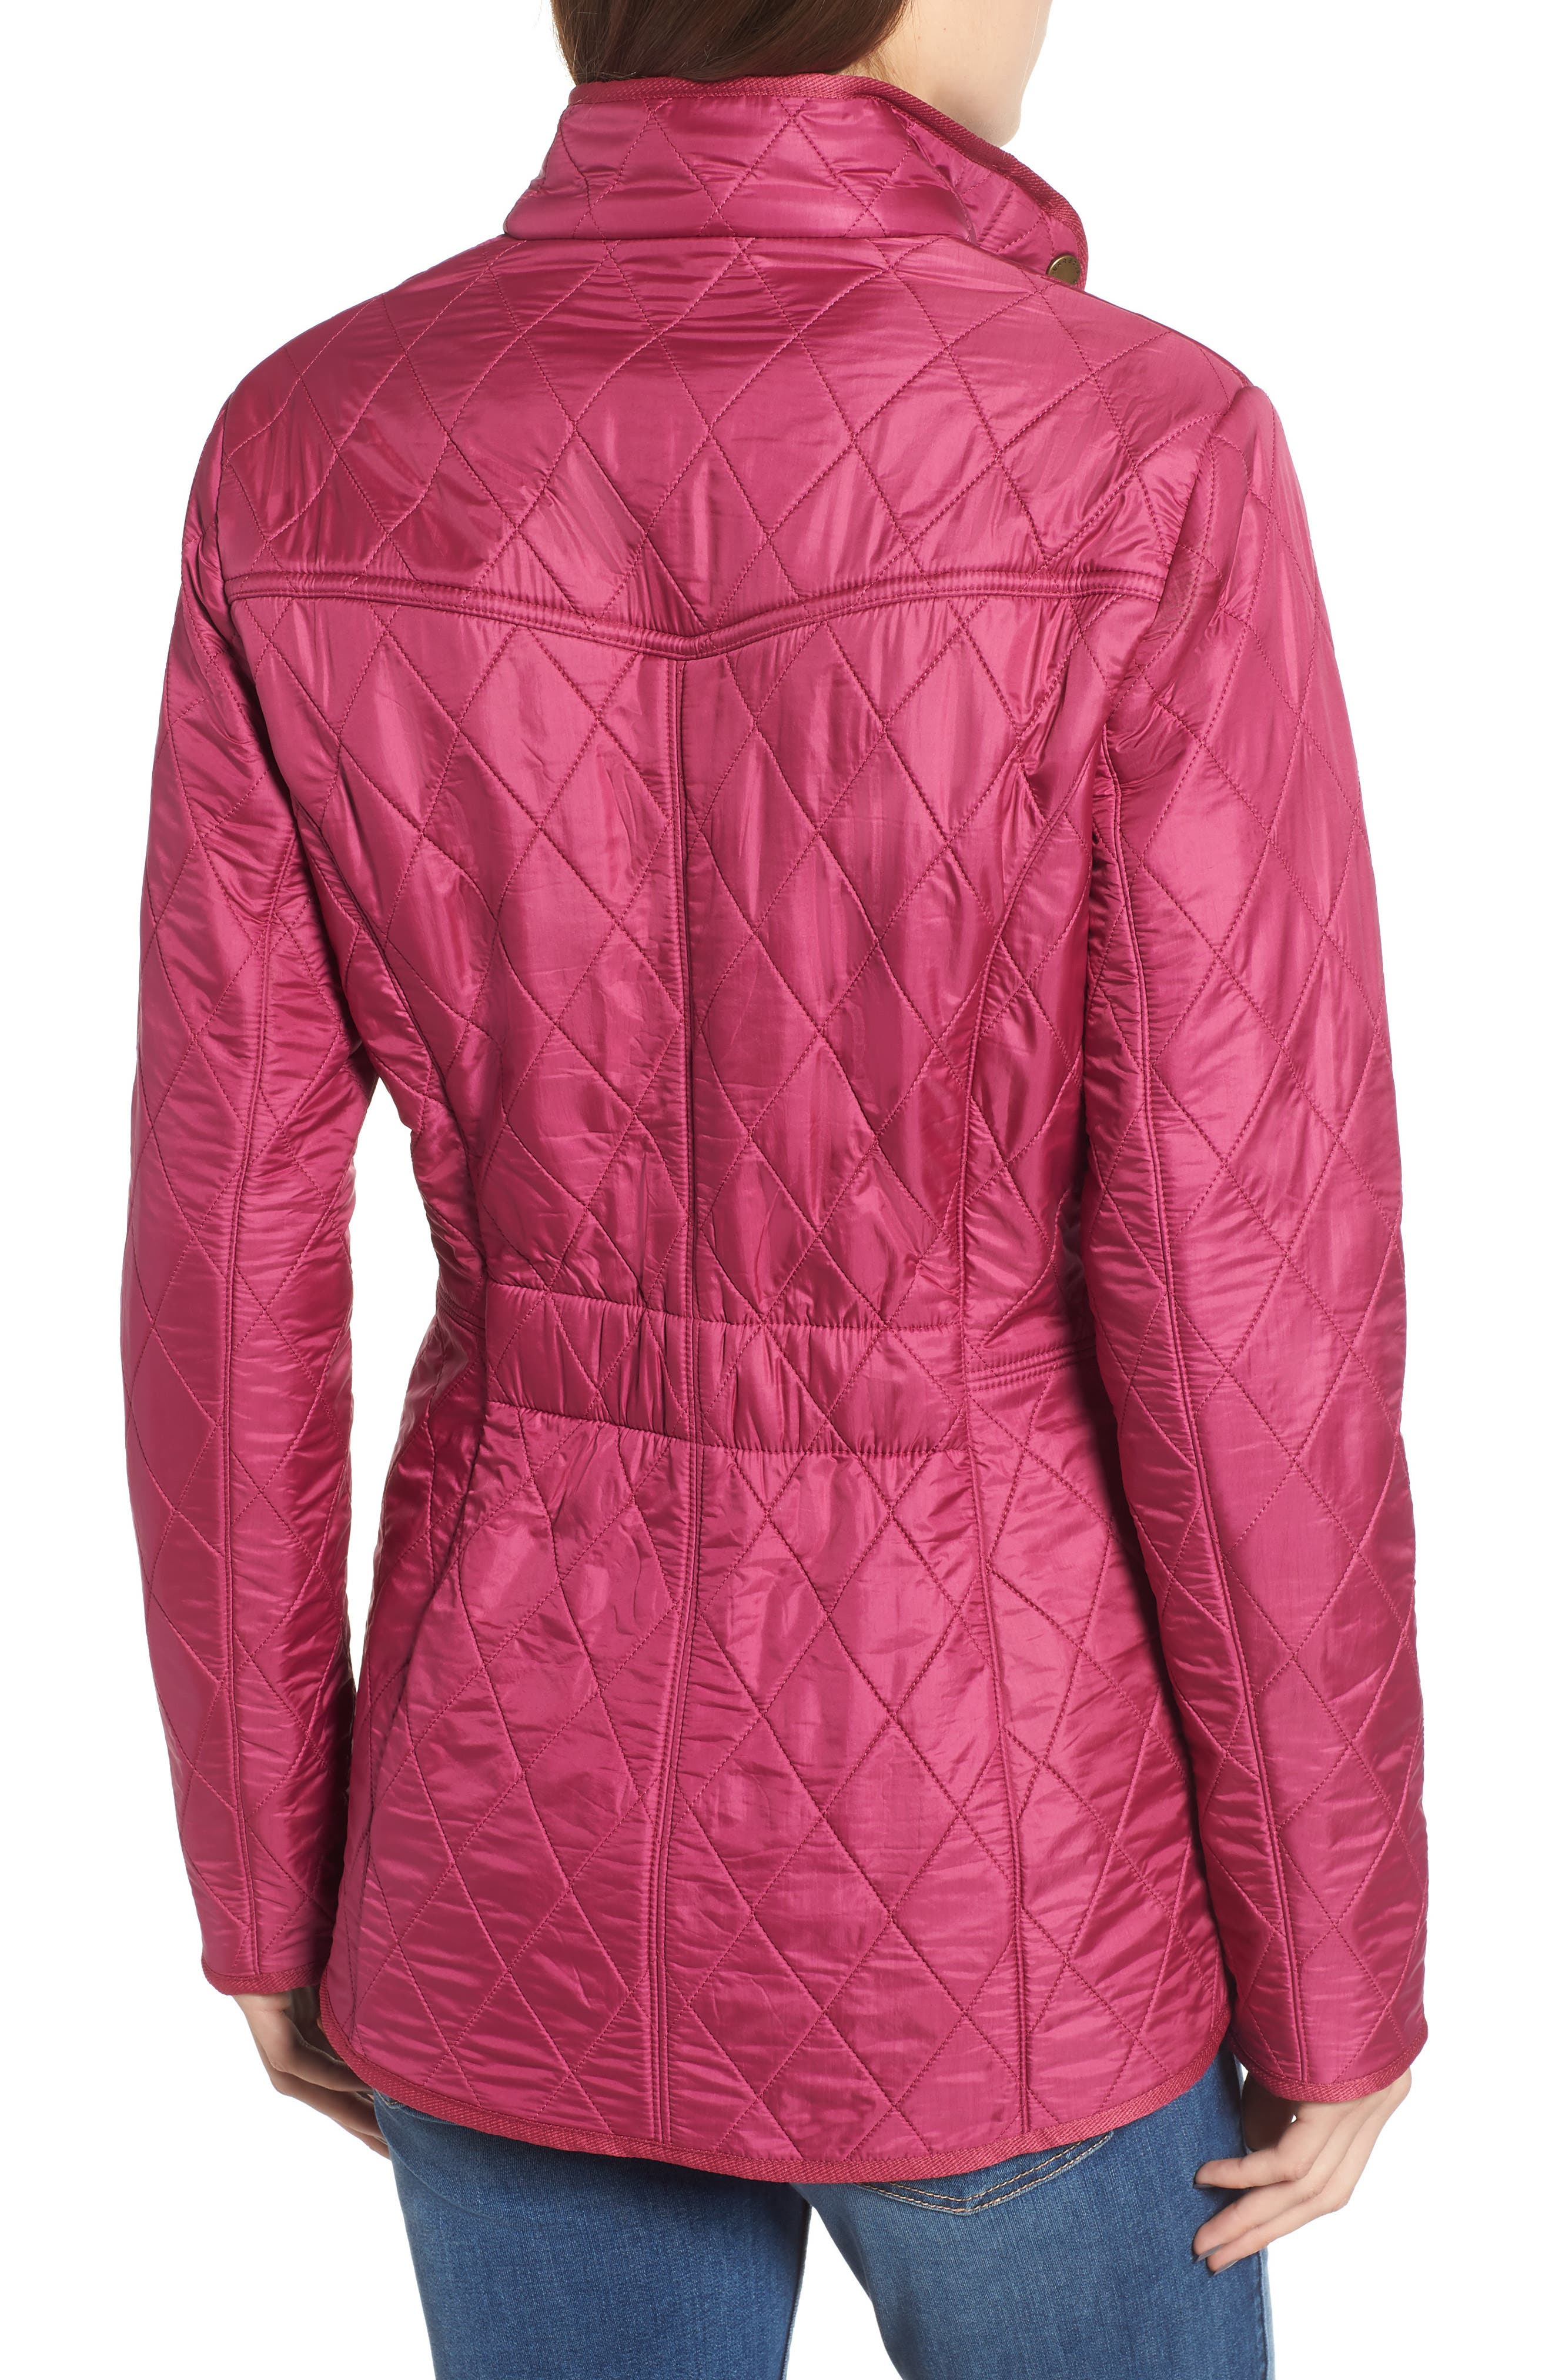 'Cavalry' Quilted Jacket,                             Alternate thumbnail 2, color,                             BERRY PINK / NAVY